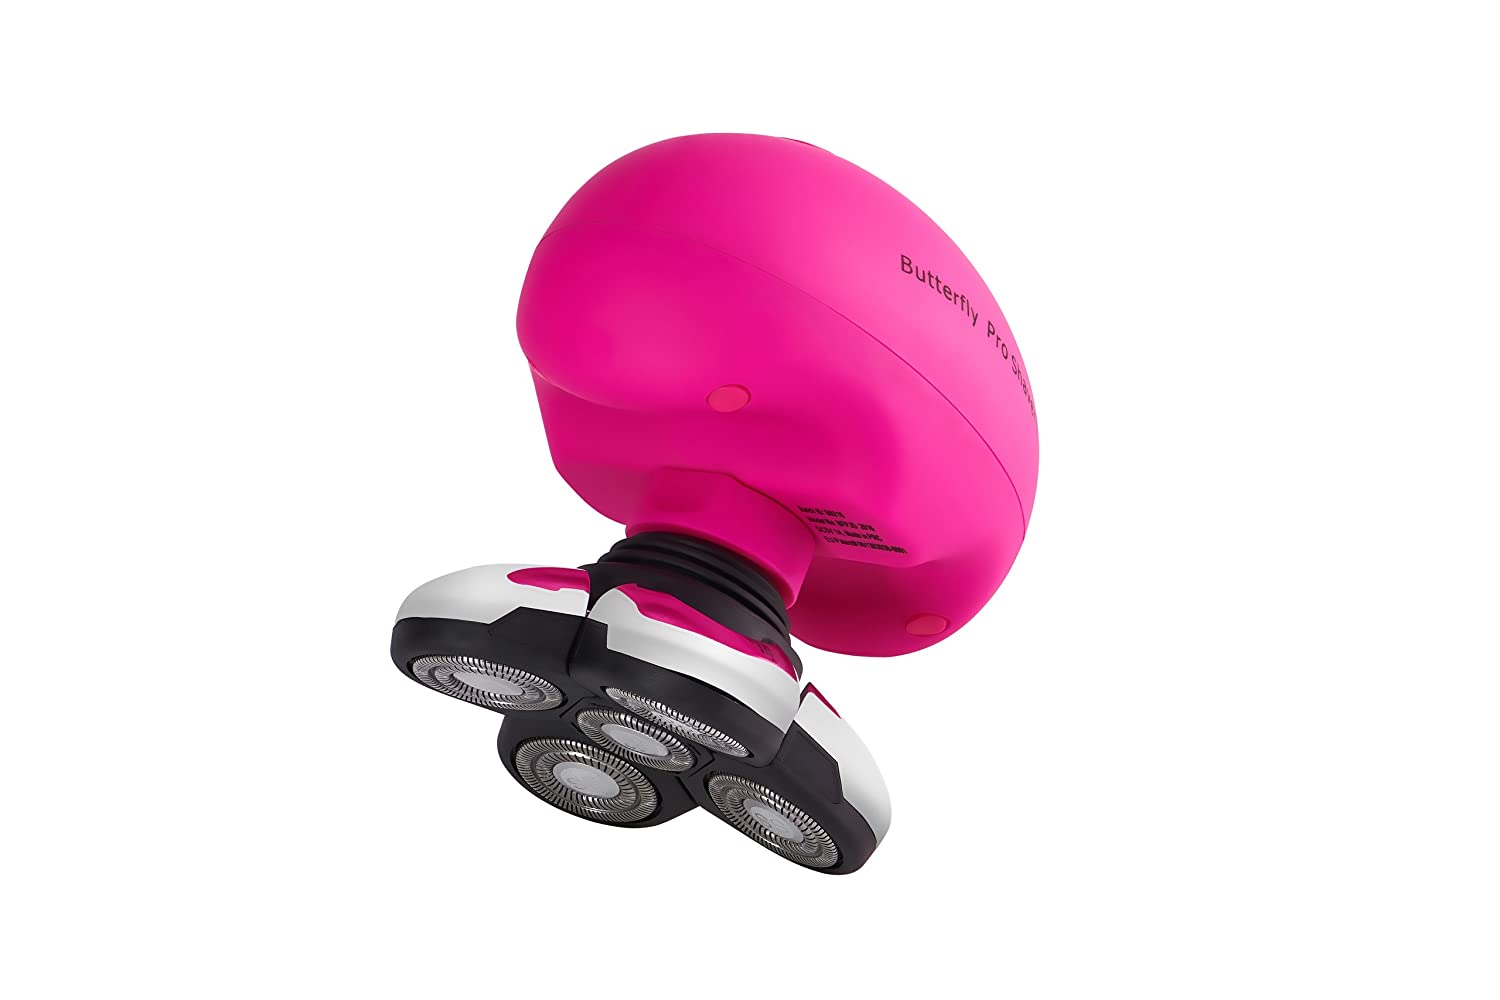 Butterfly Pro Shaver Pink 5h Skull Shaver Butterfly Pro 5h